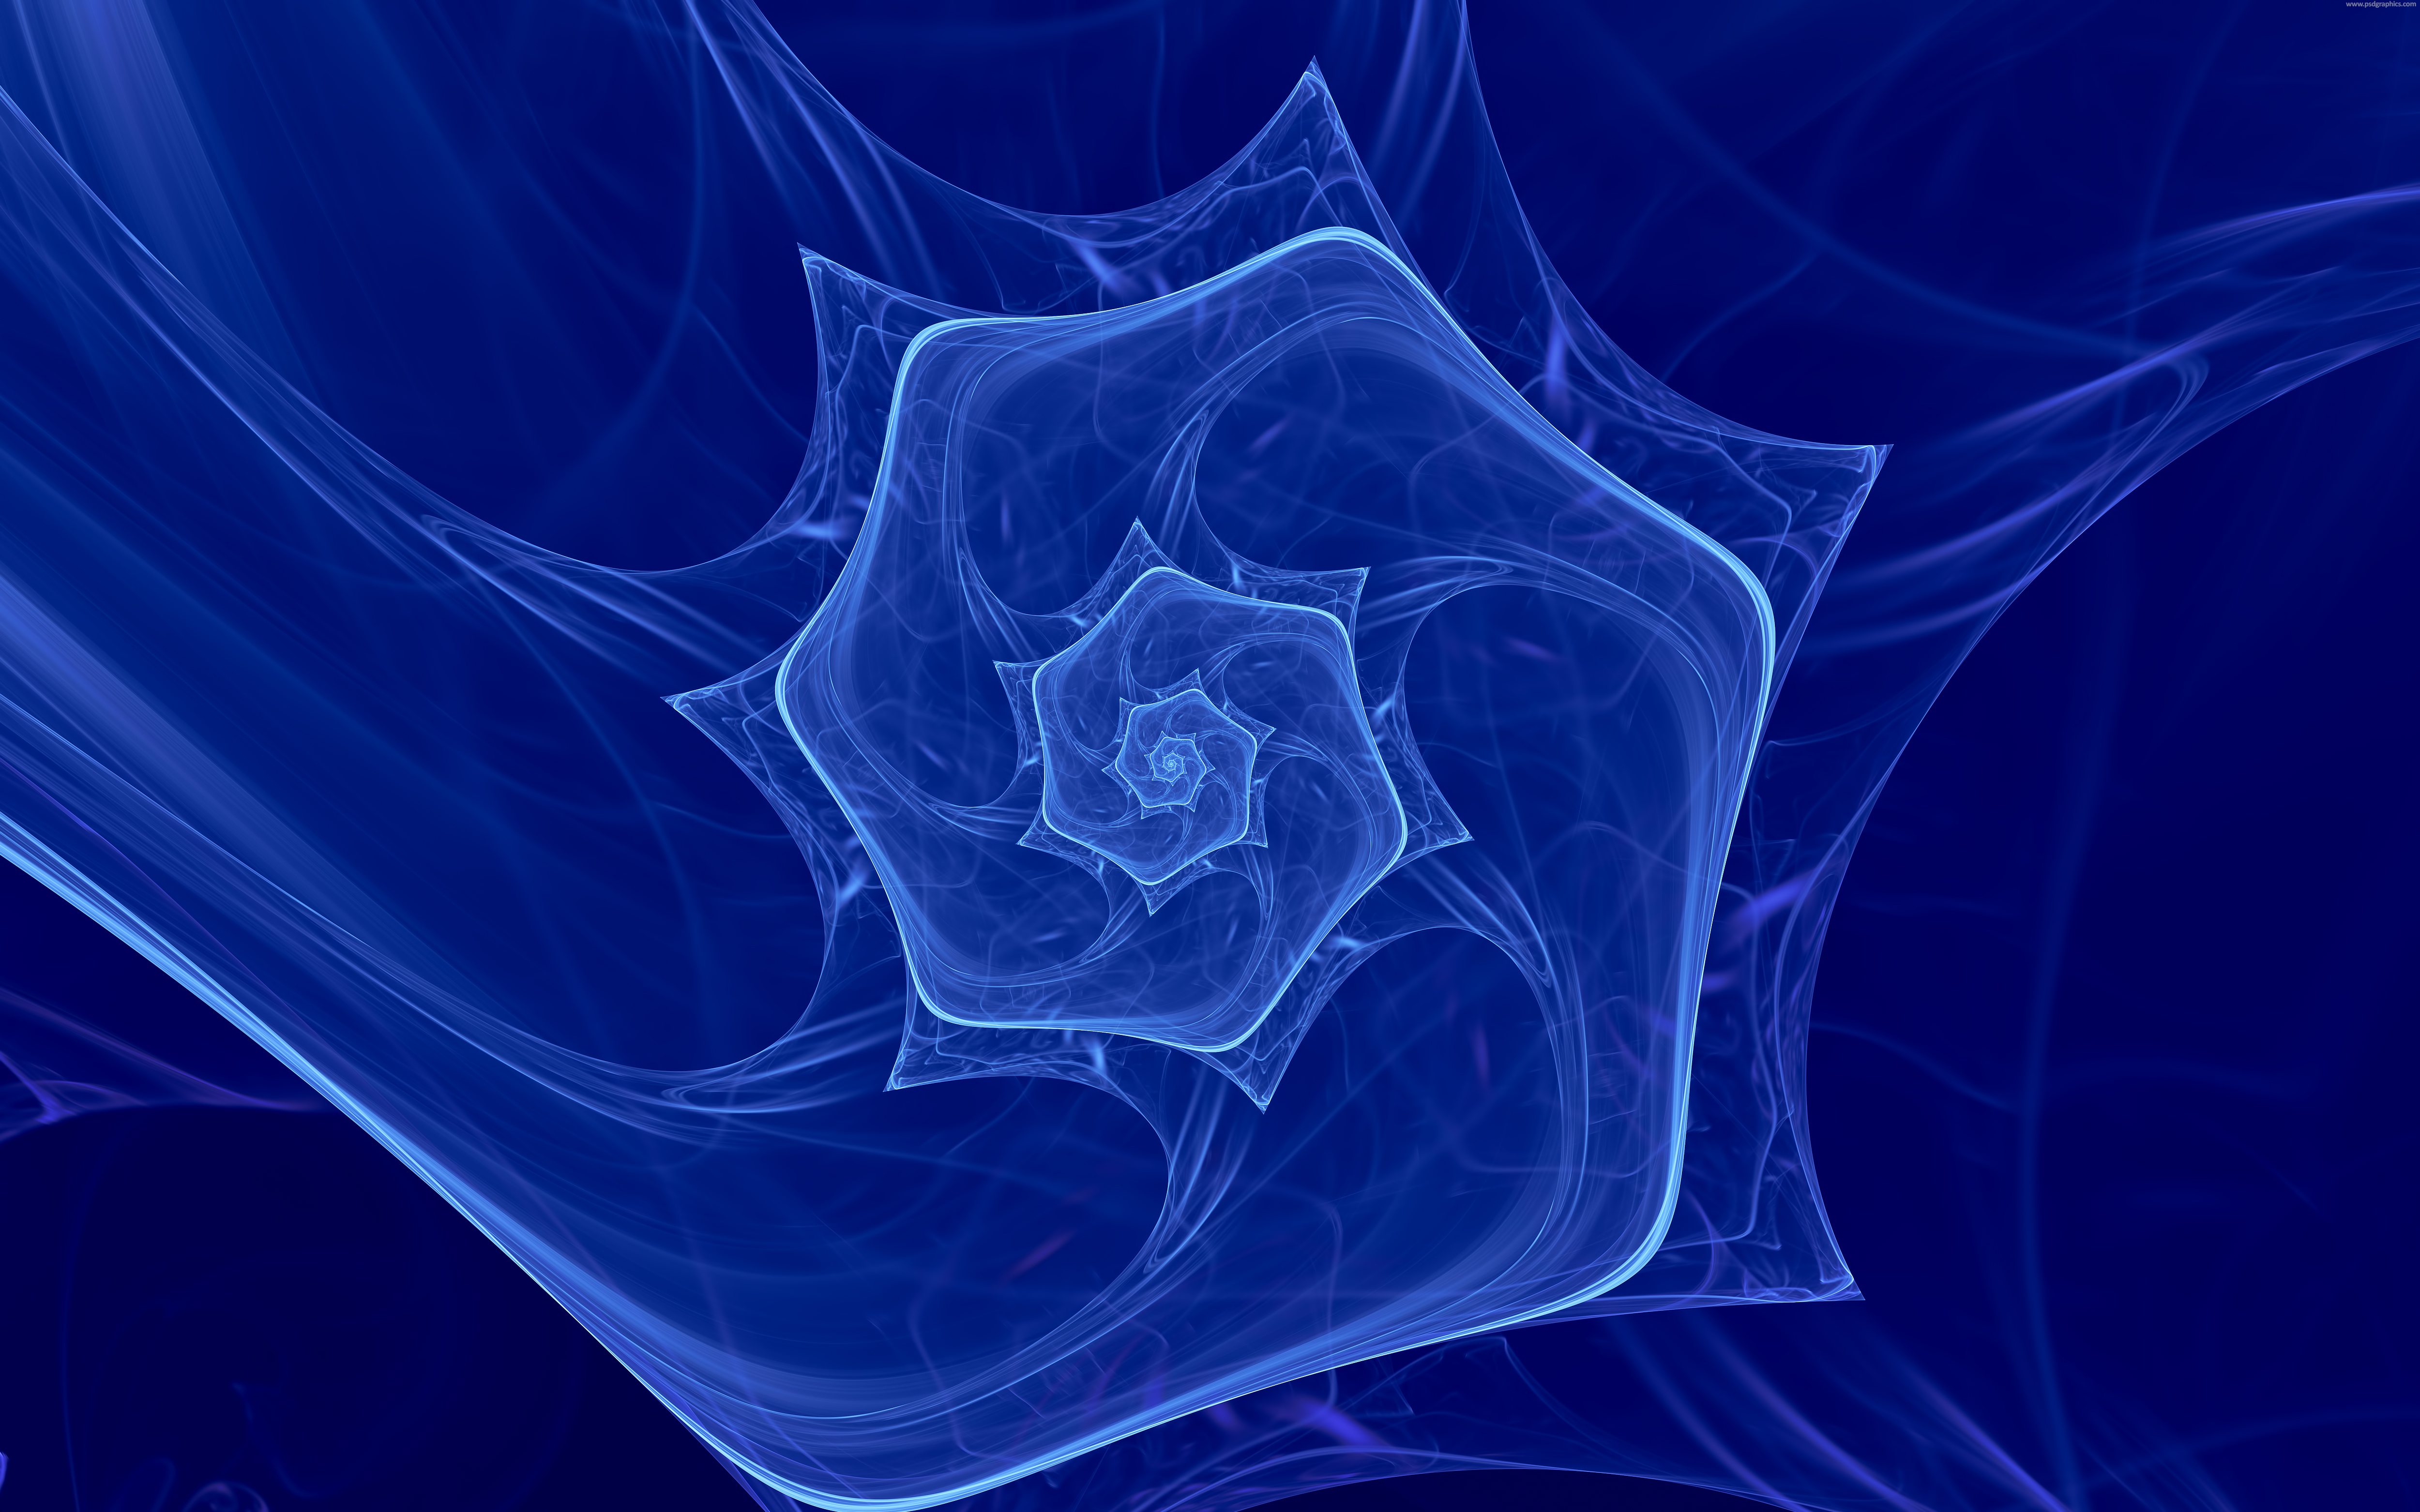 Blue Spiral Fractal Background Psdgraphics